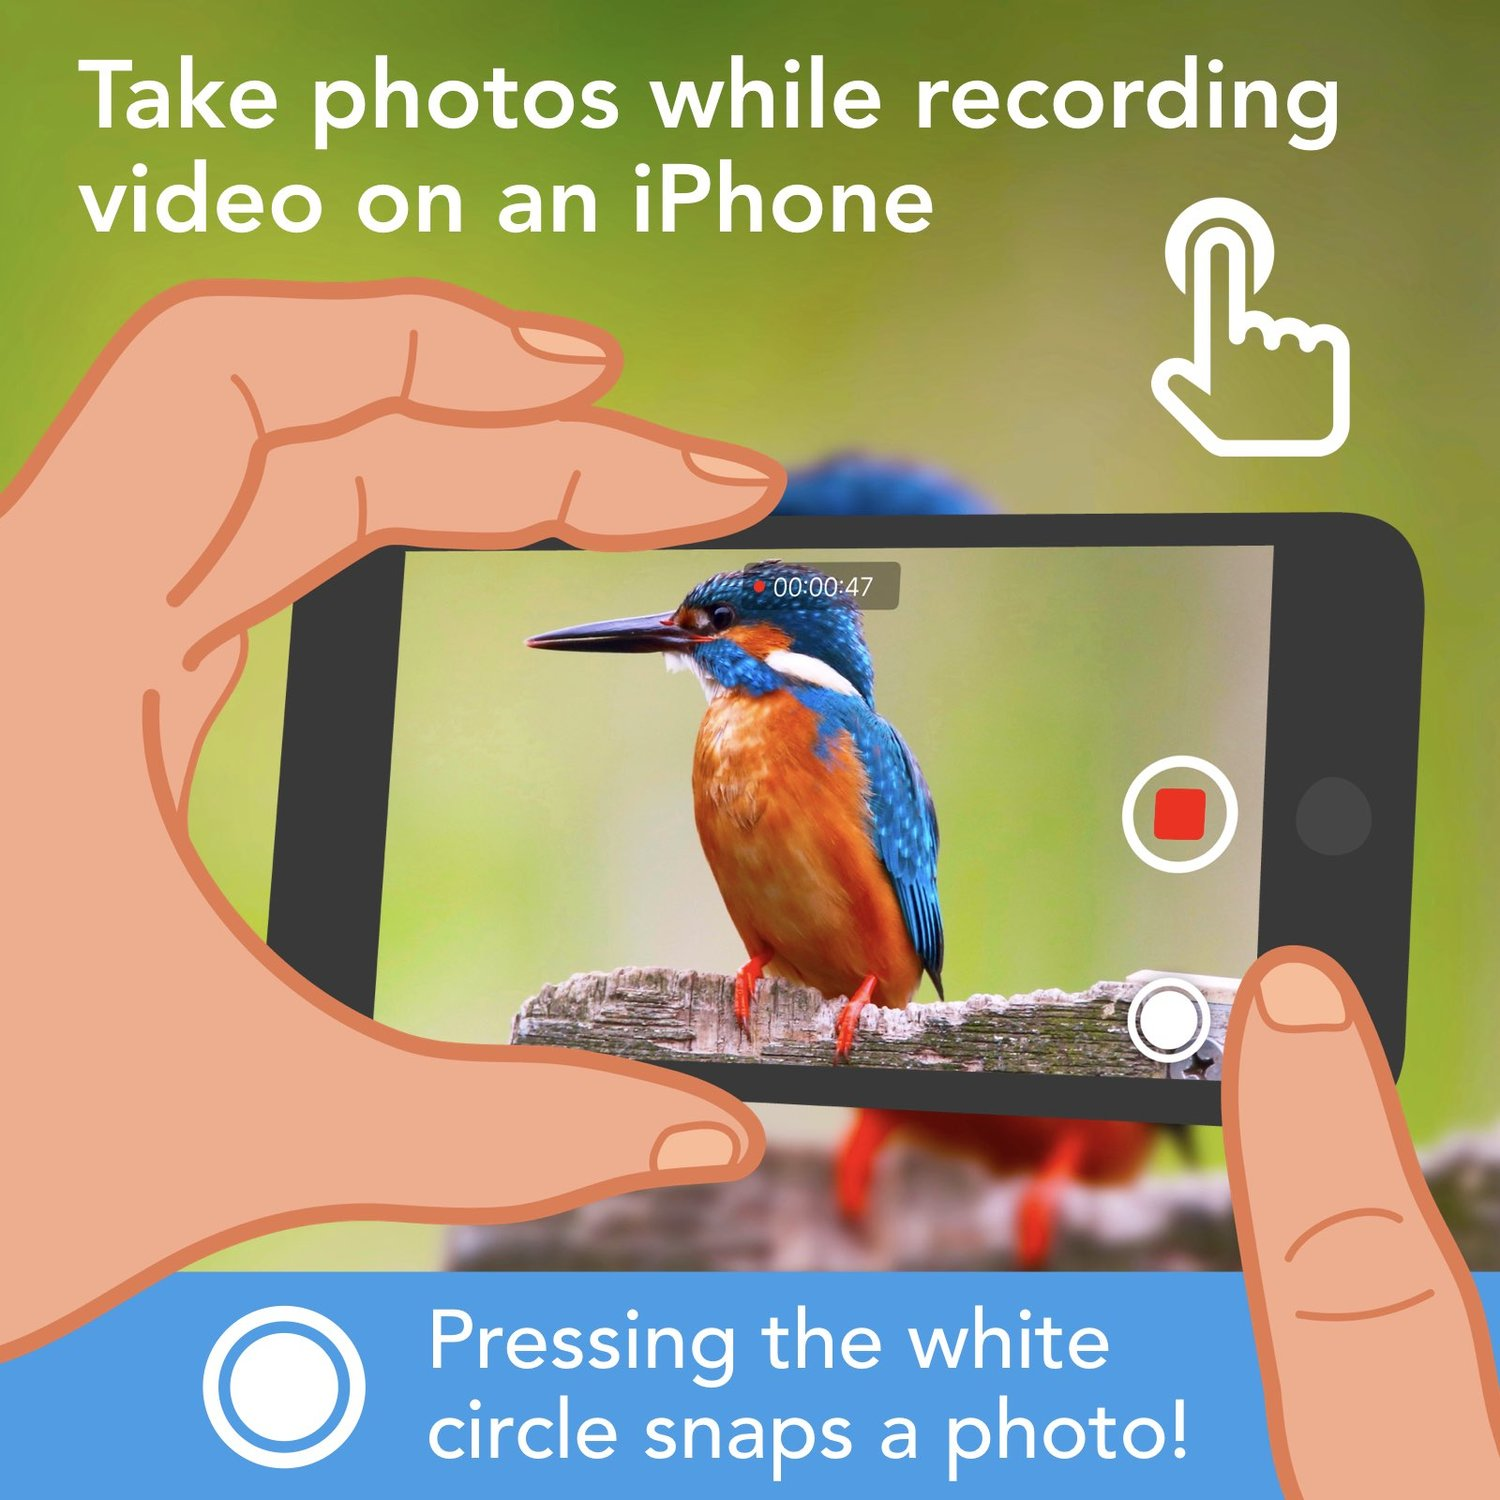 📸 You can snap a photo while recording video on an iPhone. Just press the white circle!   (Android also has this feature.) https://t.co/YPY7bYdqEZ